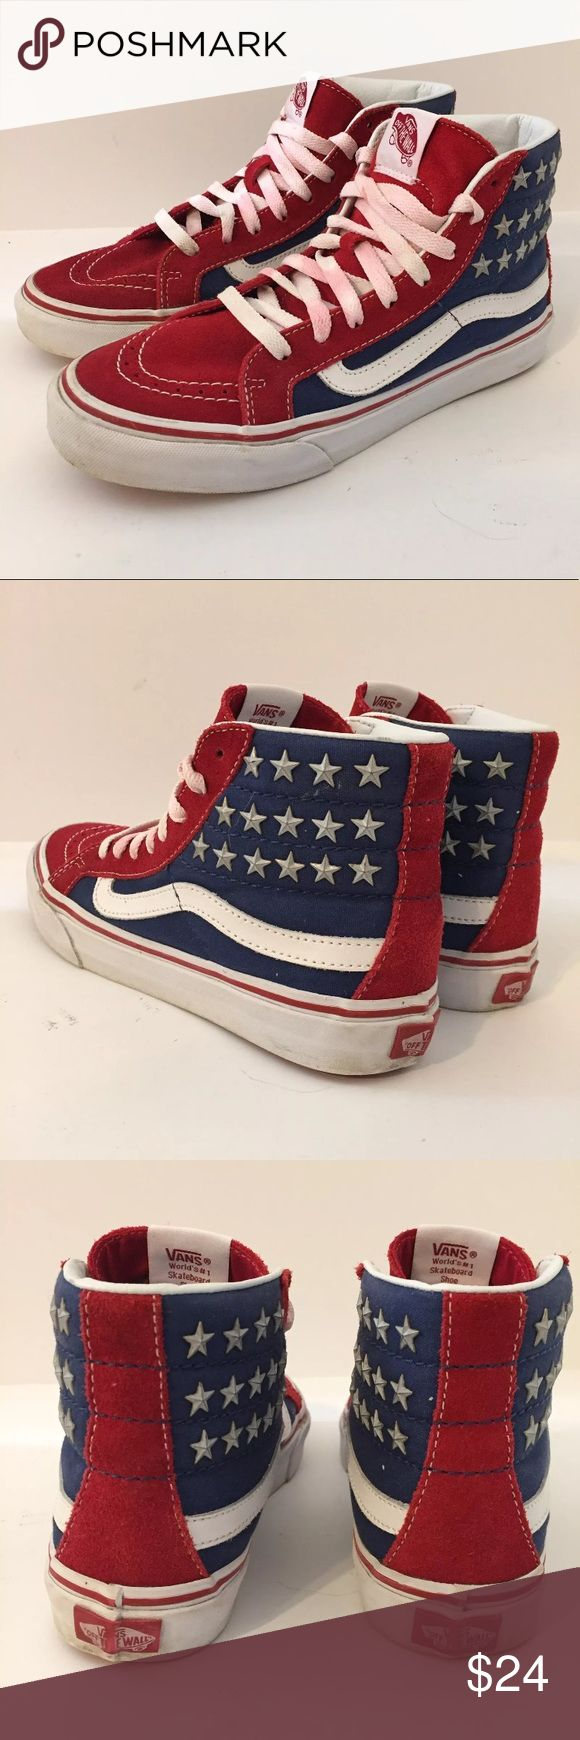 Vans Sk8 Hi USA Flag Studded Mens 5.5 womens 7 Vans sk8 hi studded shoes. In great shape. Only wear is red from the suede has seeped into the laces. Clean otherwise. Mens 5.5, womens 7. Vans Shoes Sneakers